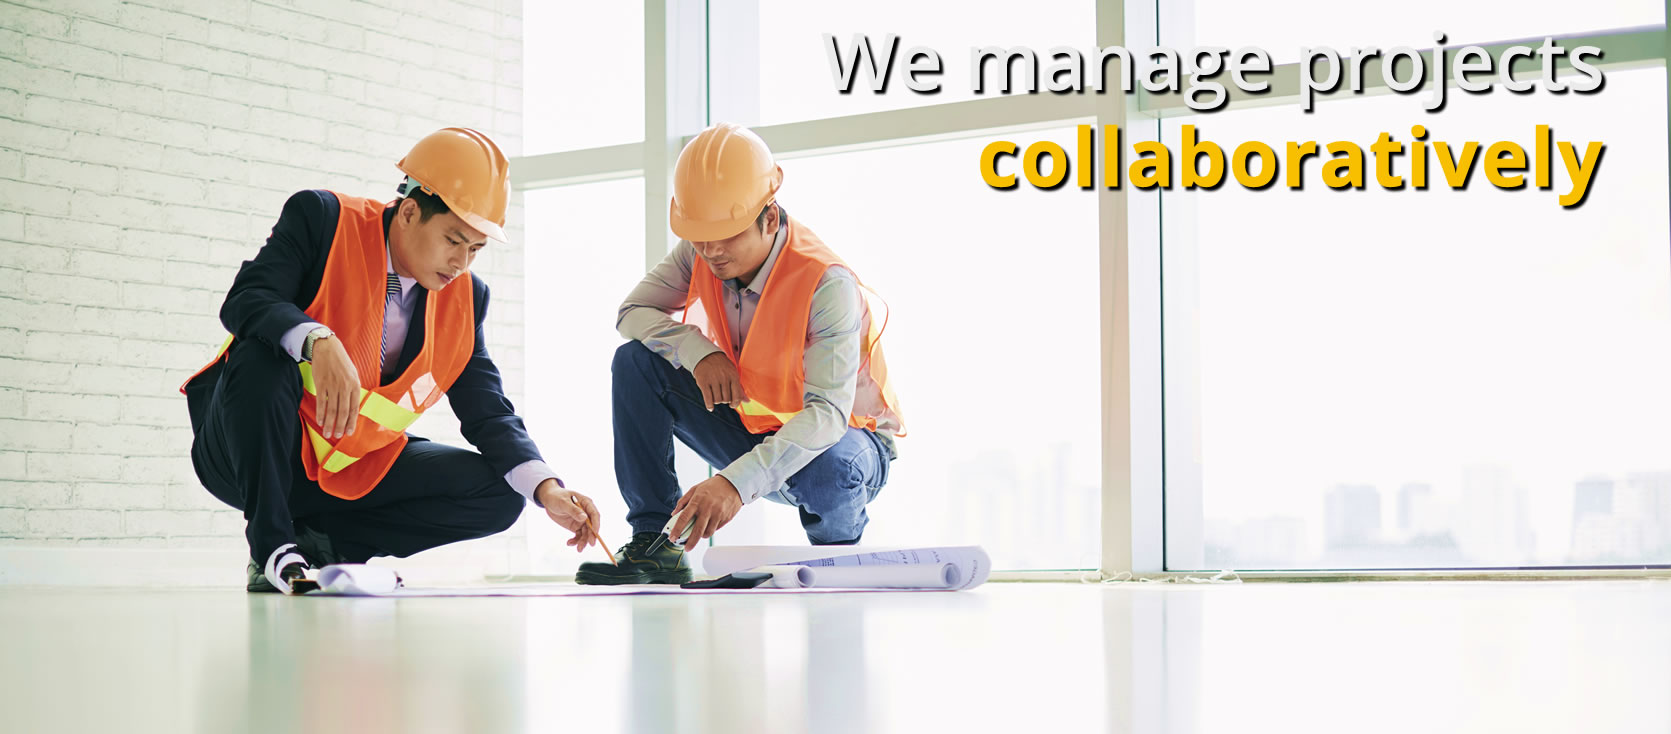 We manage projects <b>Collaboratively</b>